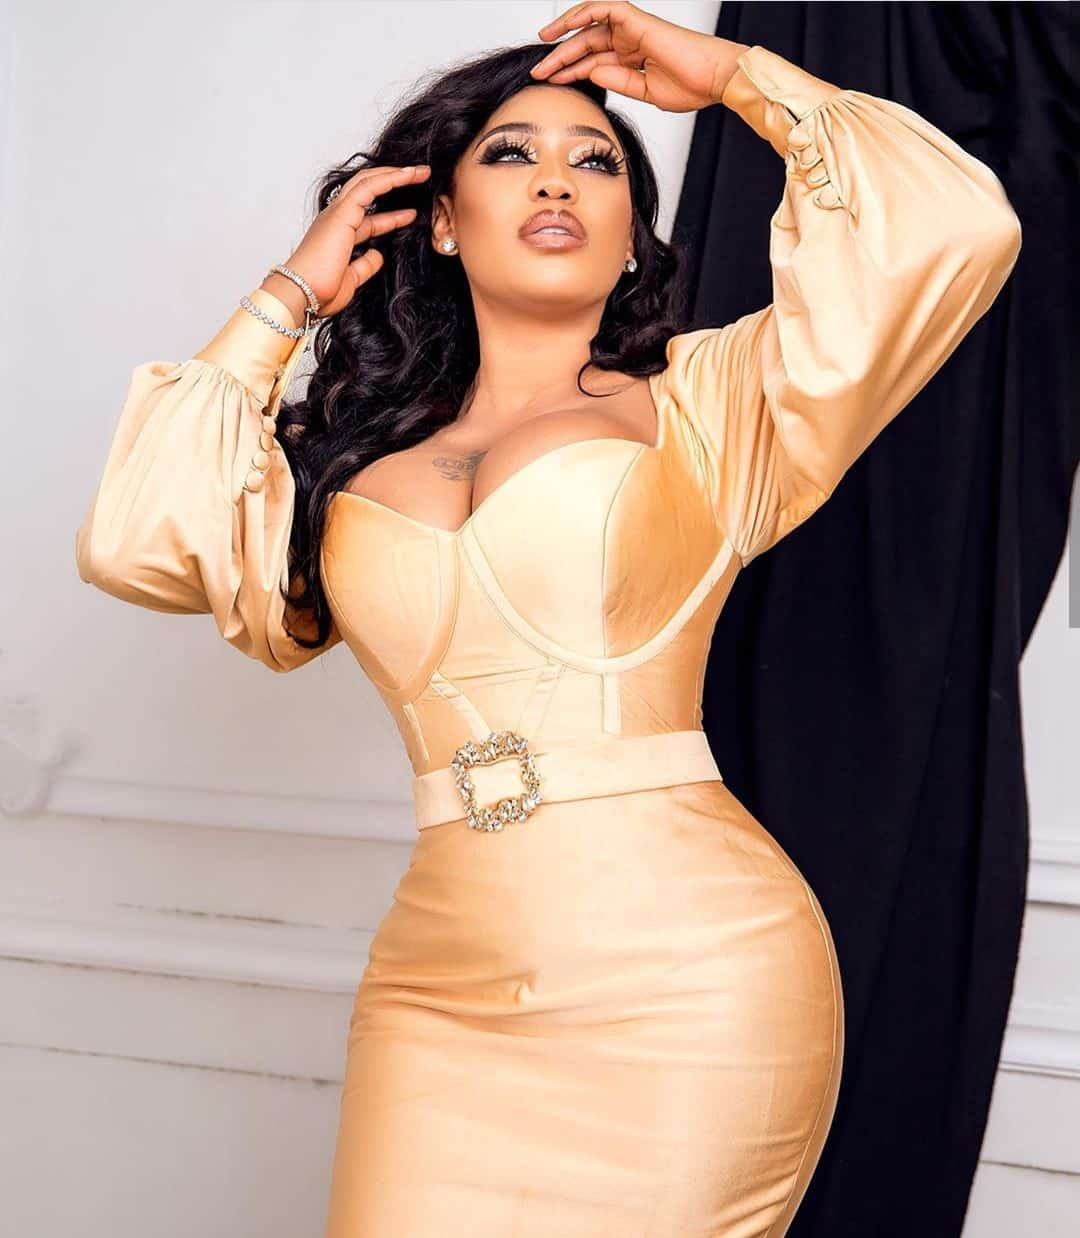 """I hope bloggers are recording"" - Toyin Lawani gets naughty on live video"